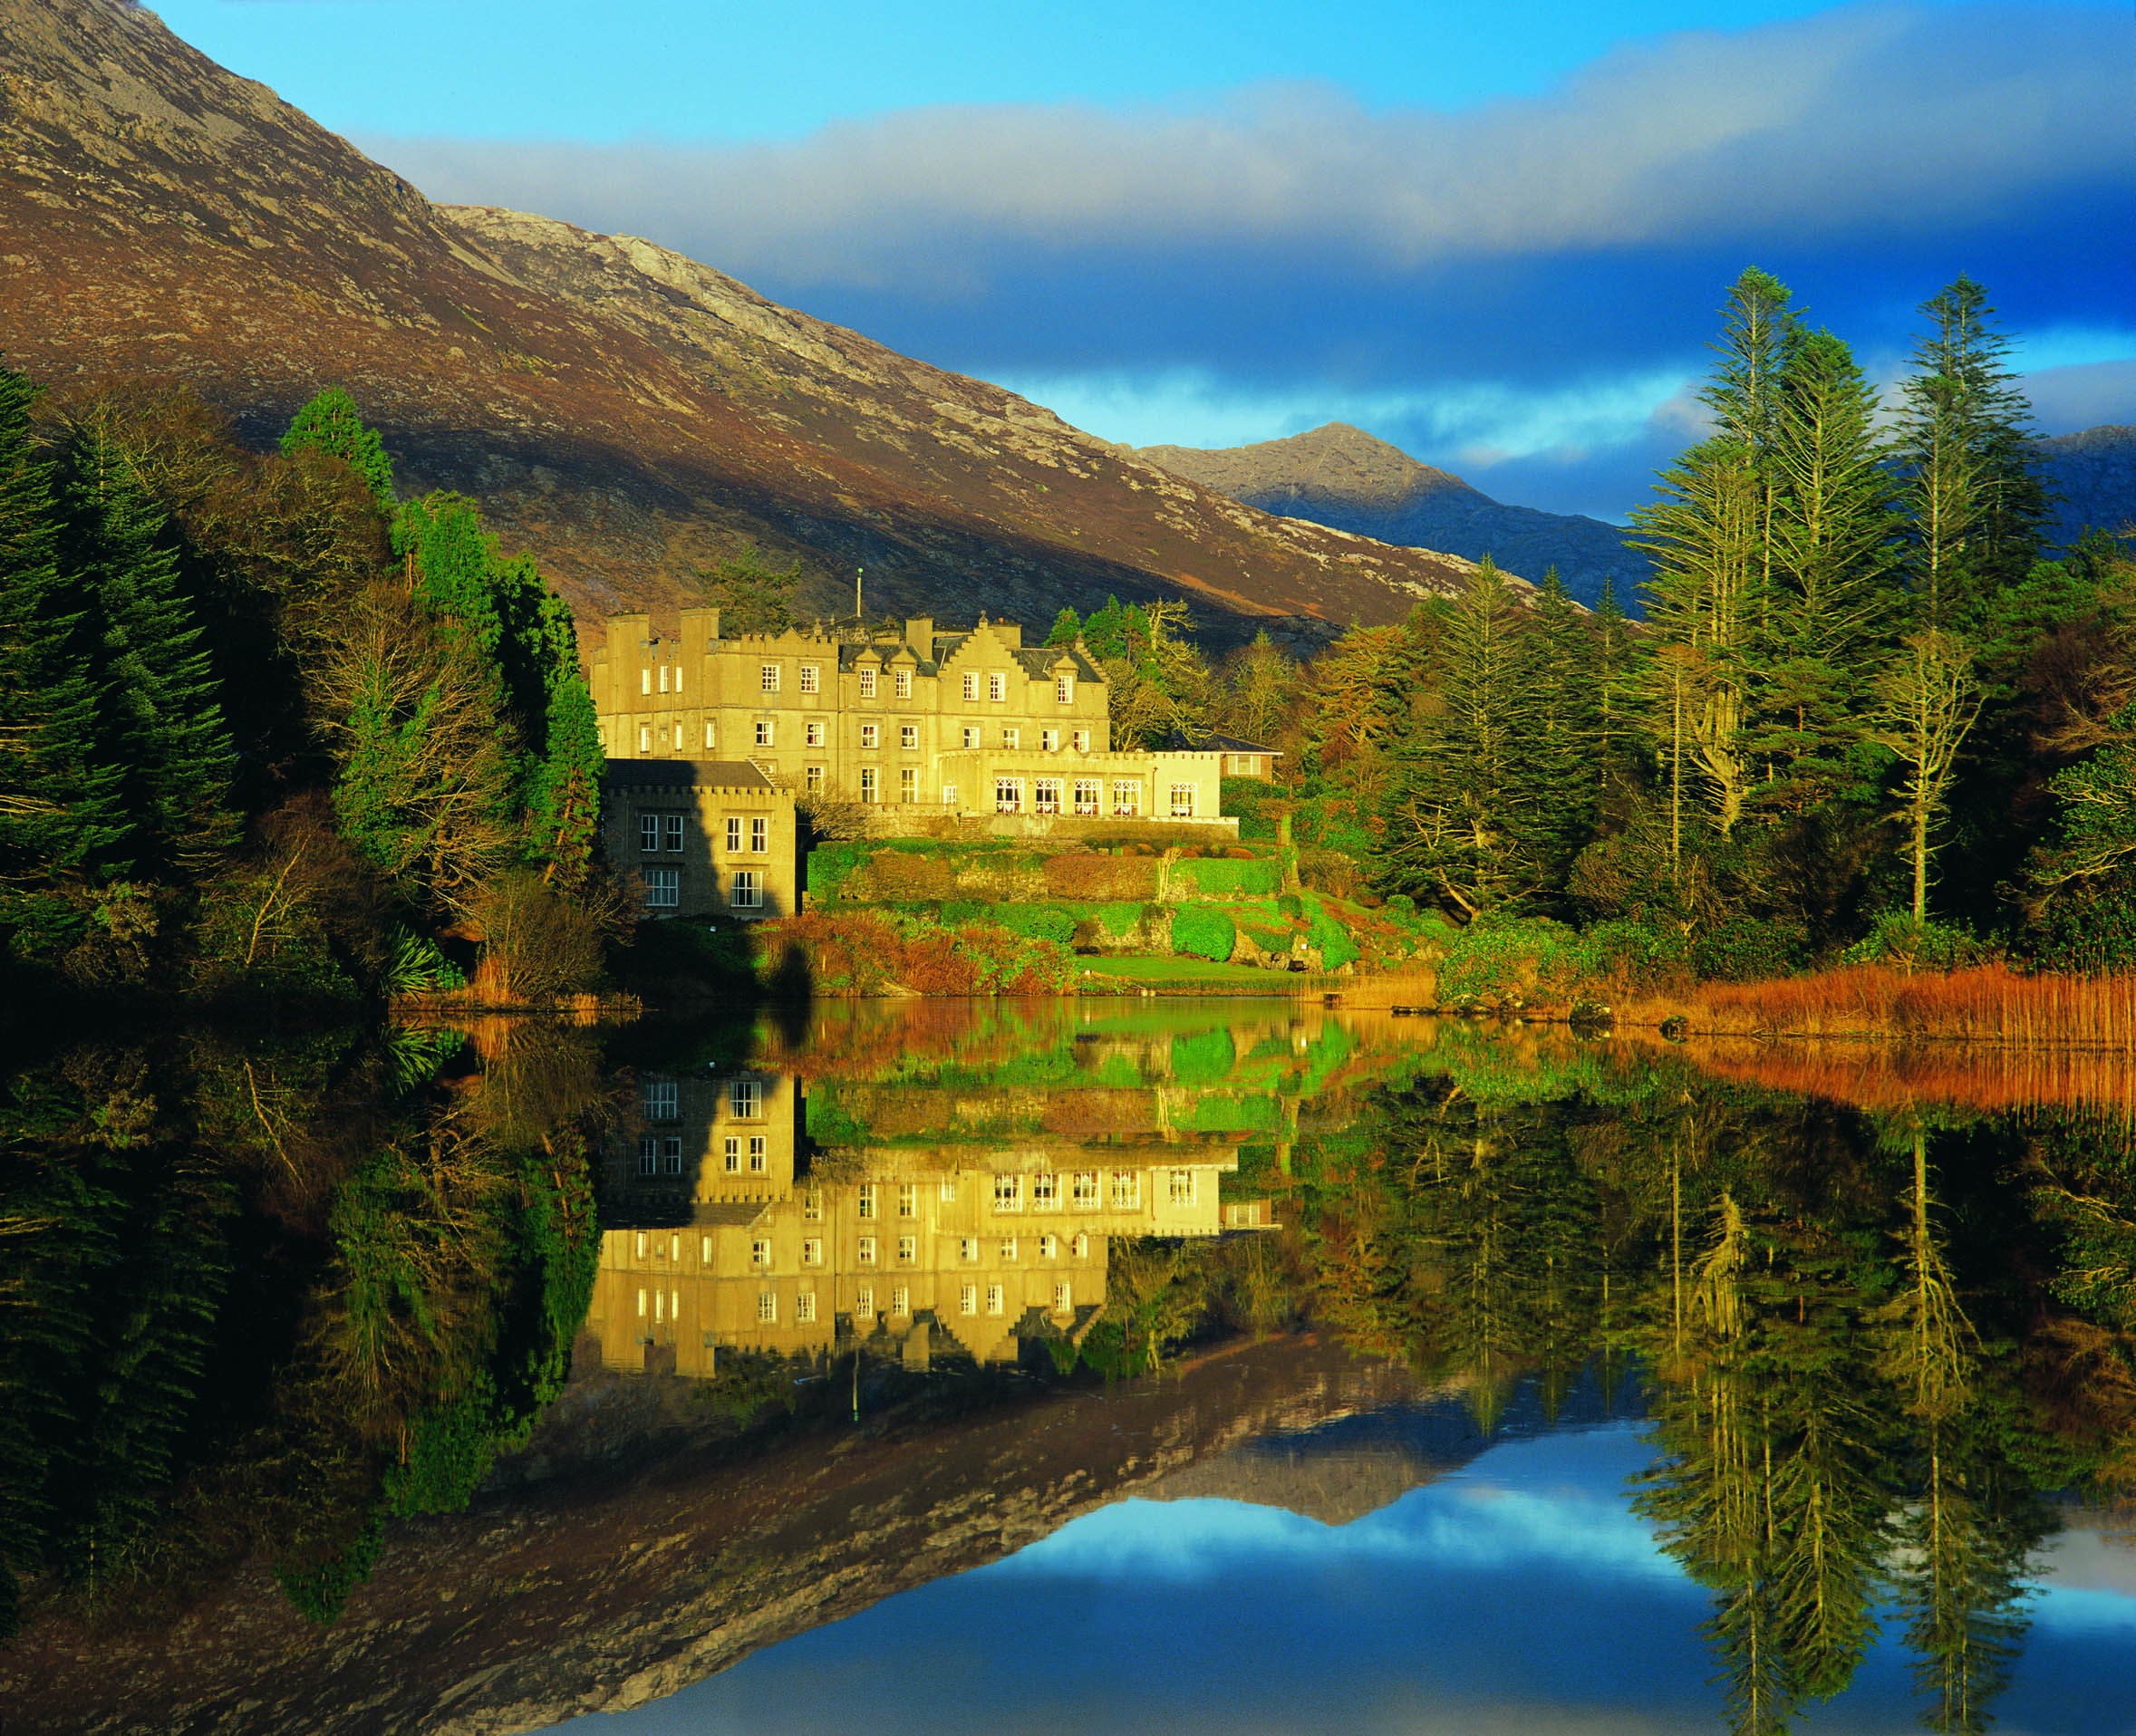 Irish Ferries Holidays Adds Castle Hotels For 2017 Irish